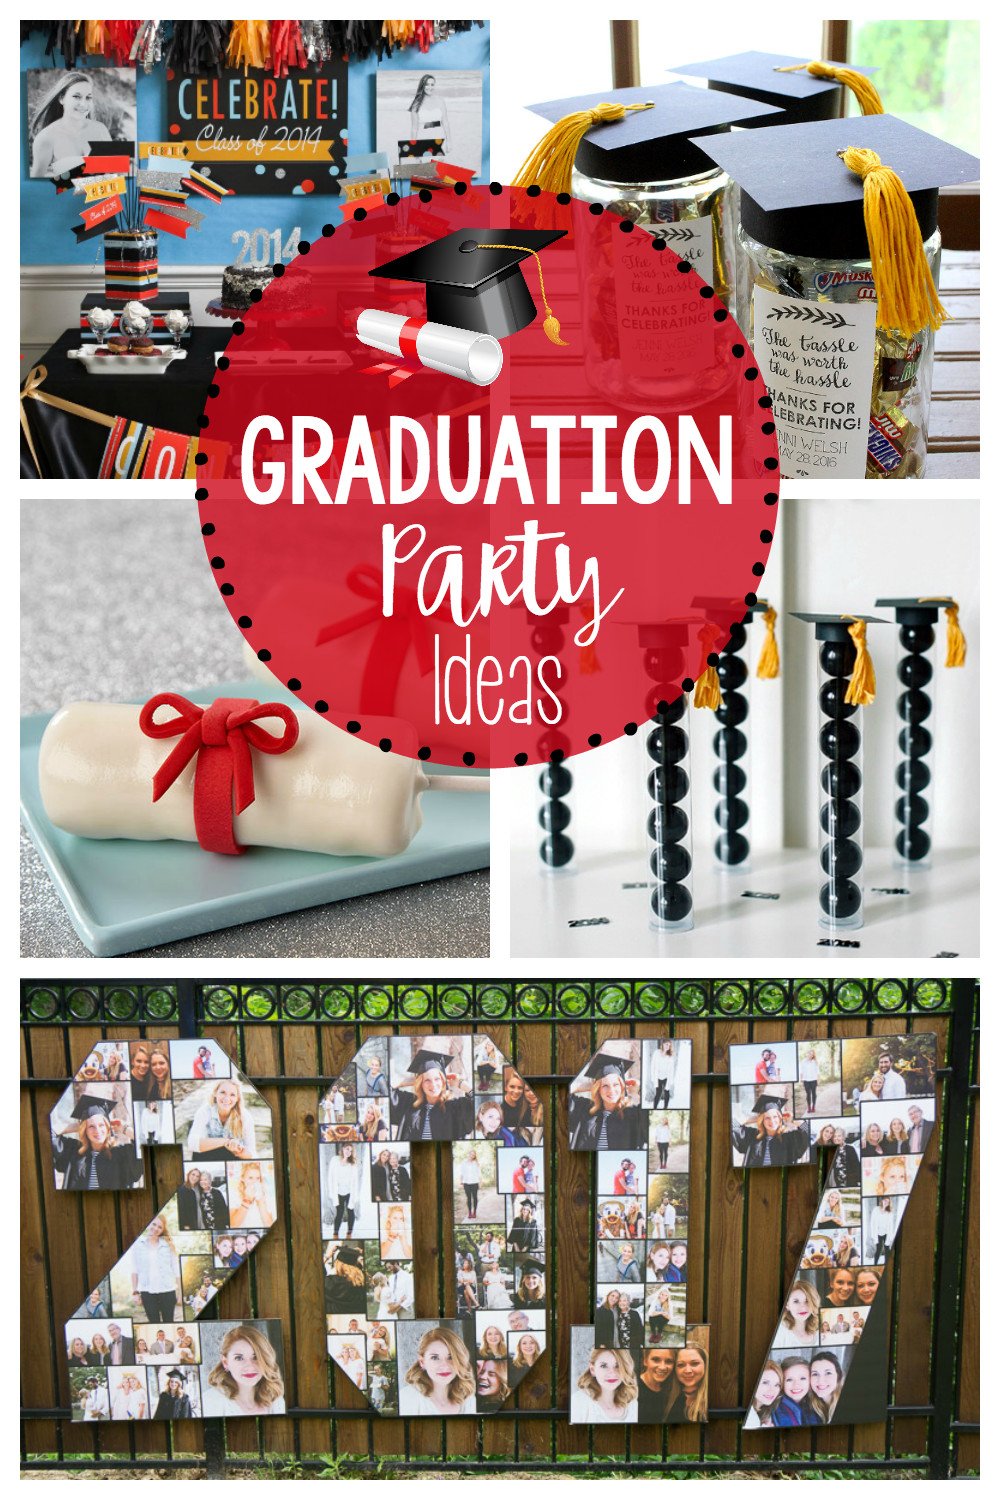 Table Decorations For Graduation Party Ideas  25 Fun Graduation Party Ideas – Fun Squared